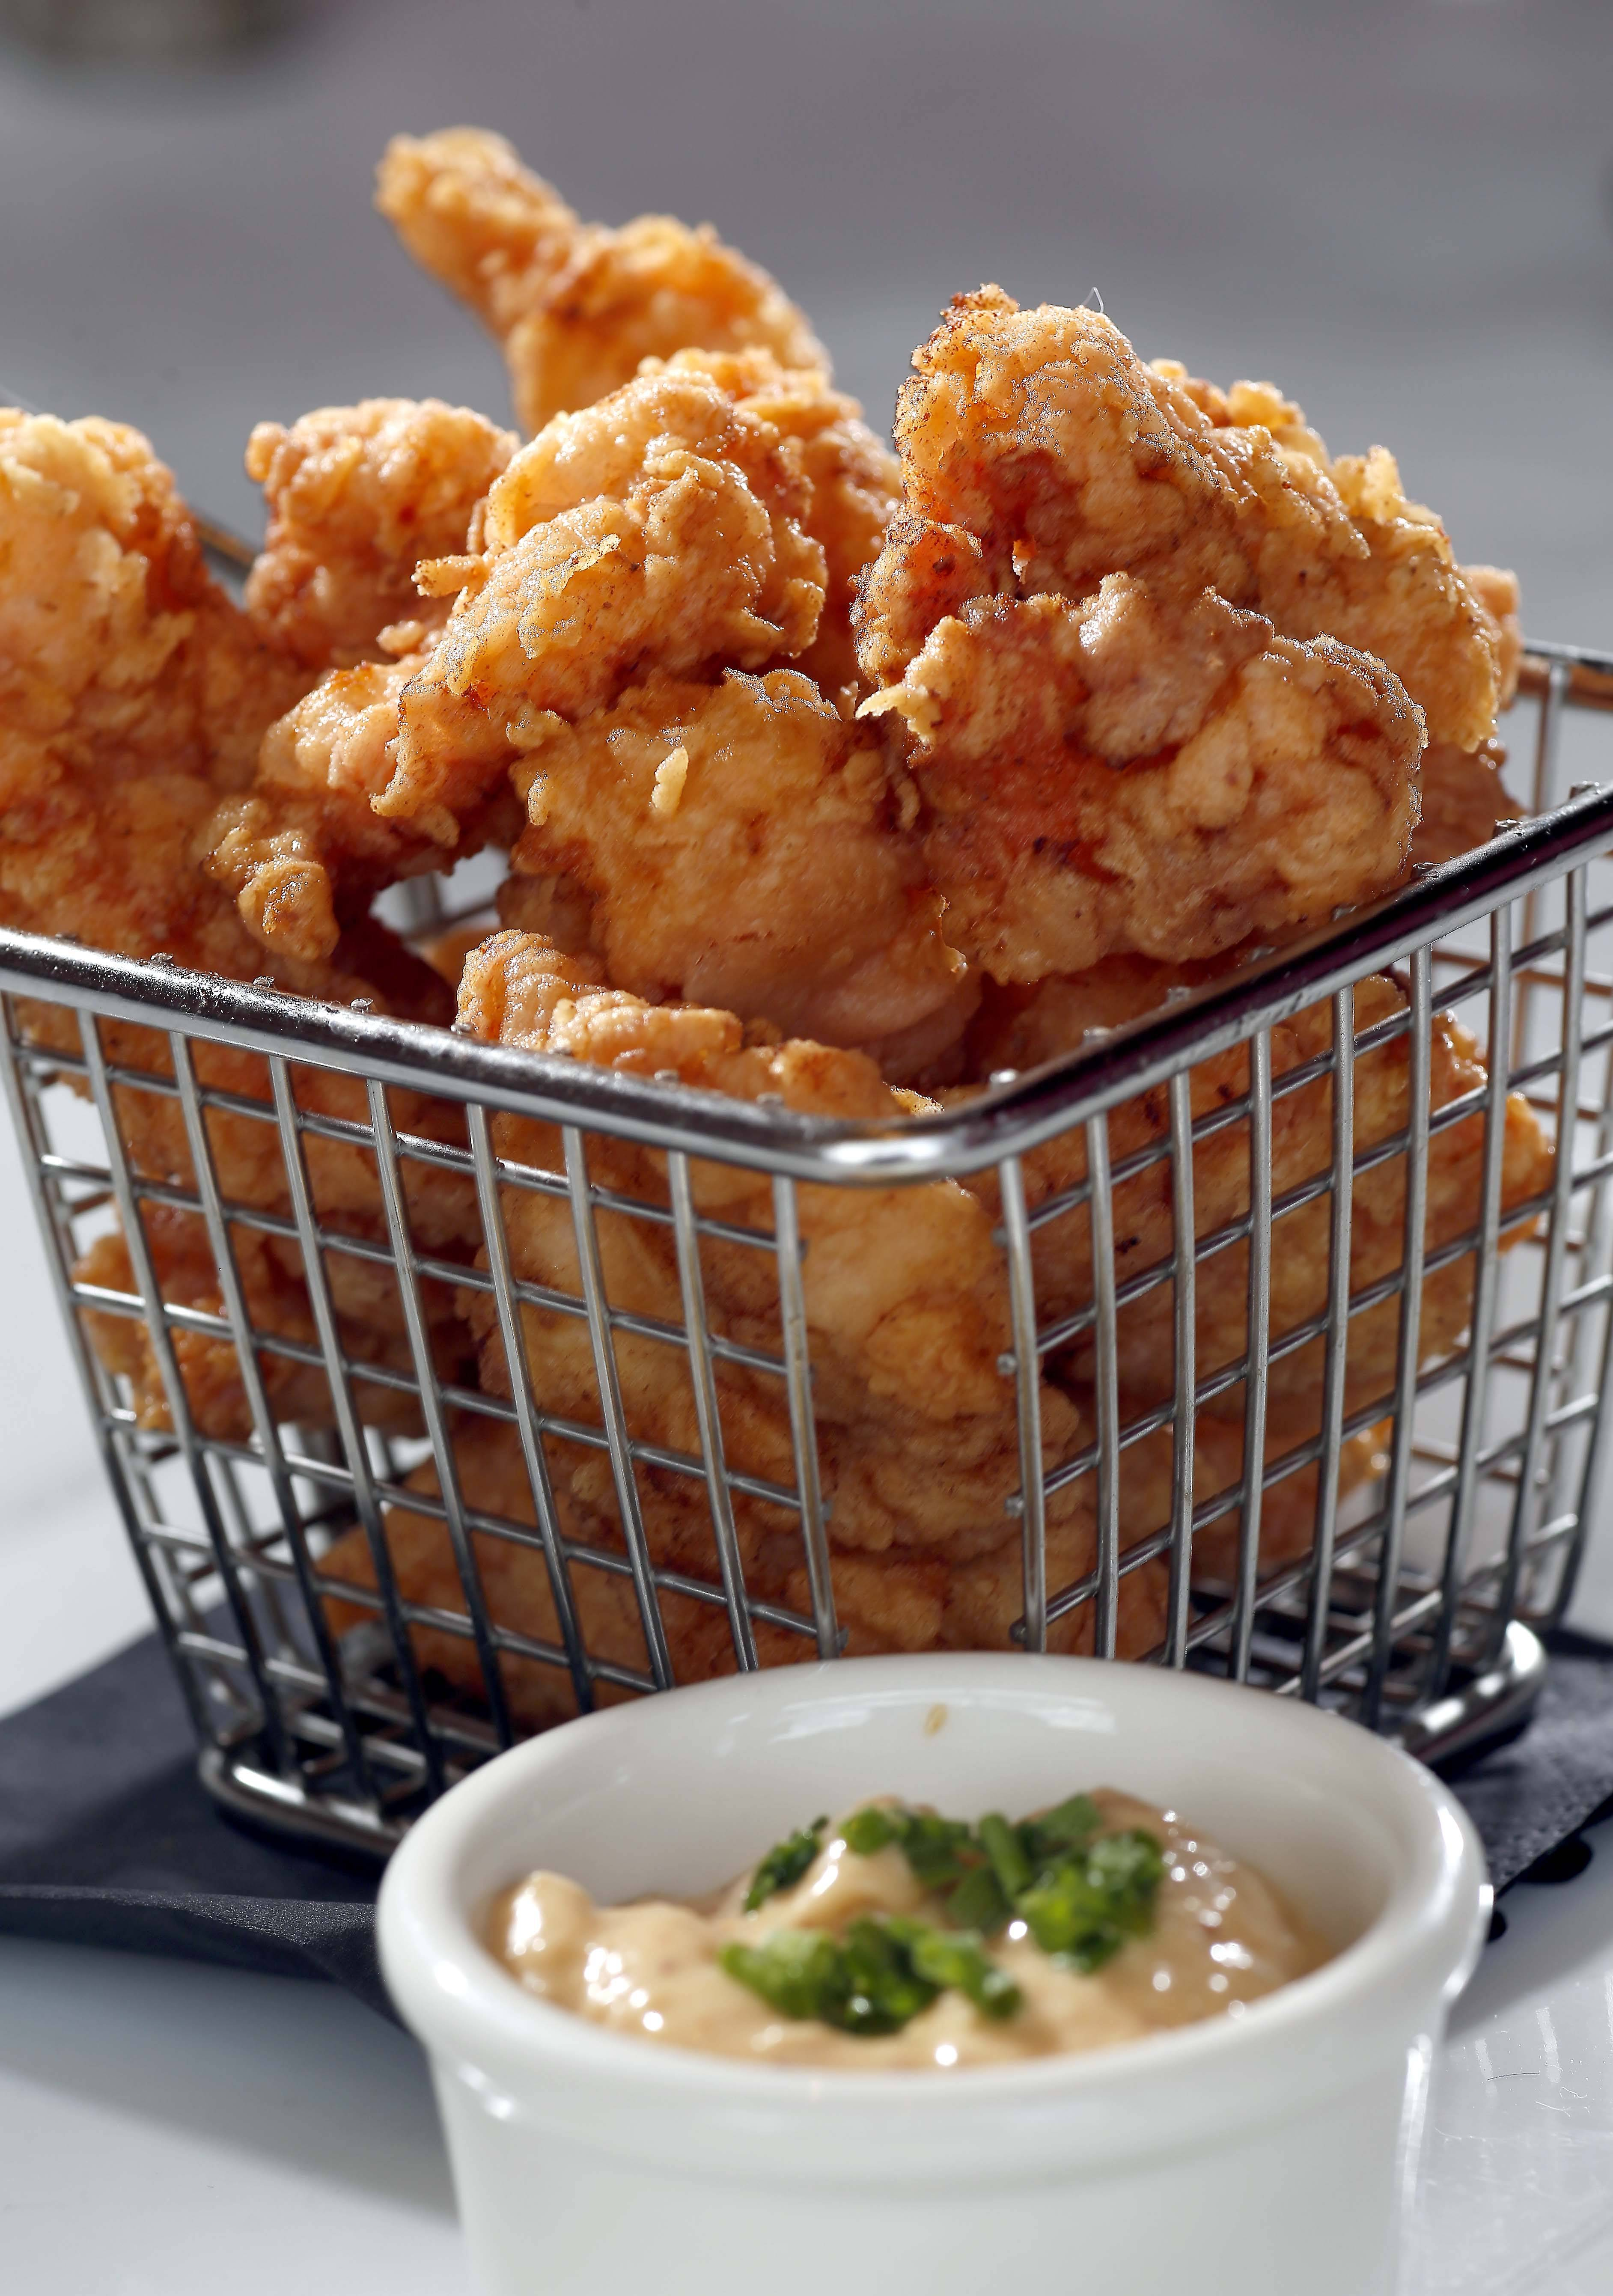 The Southern fried alligator tail is served with horseradish aioli at Bold American Fare in Algonquin.